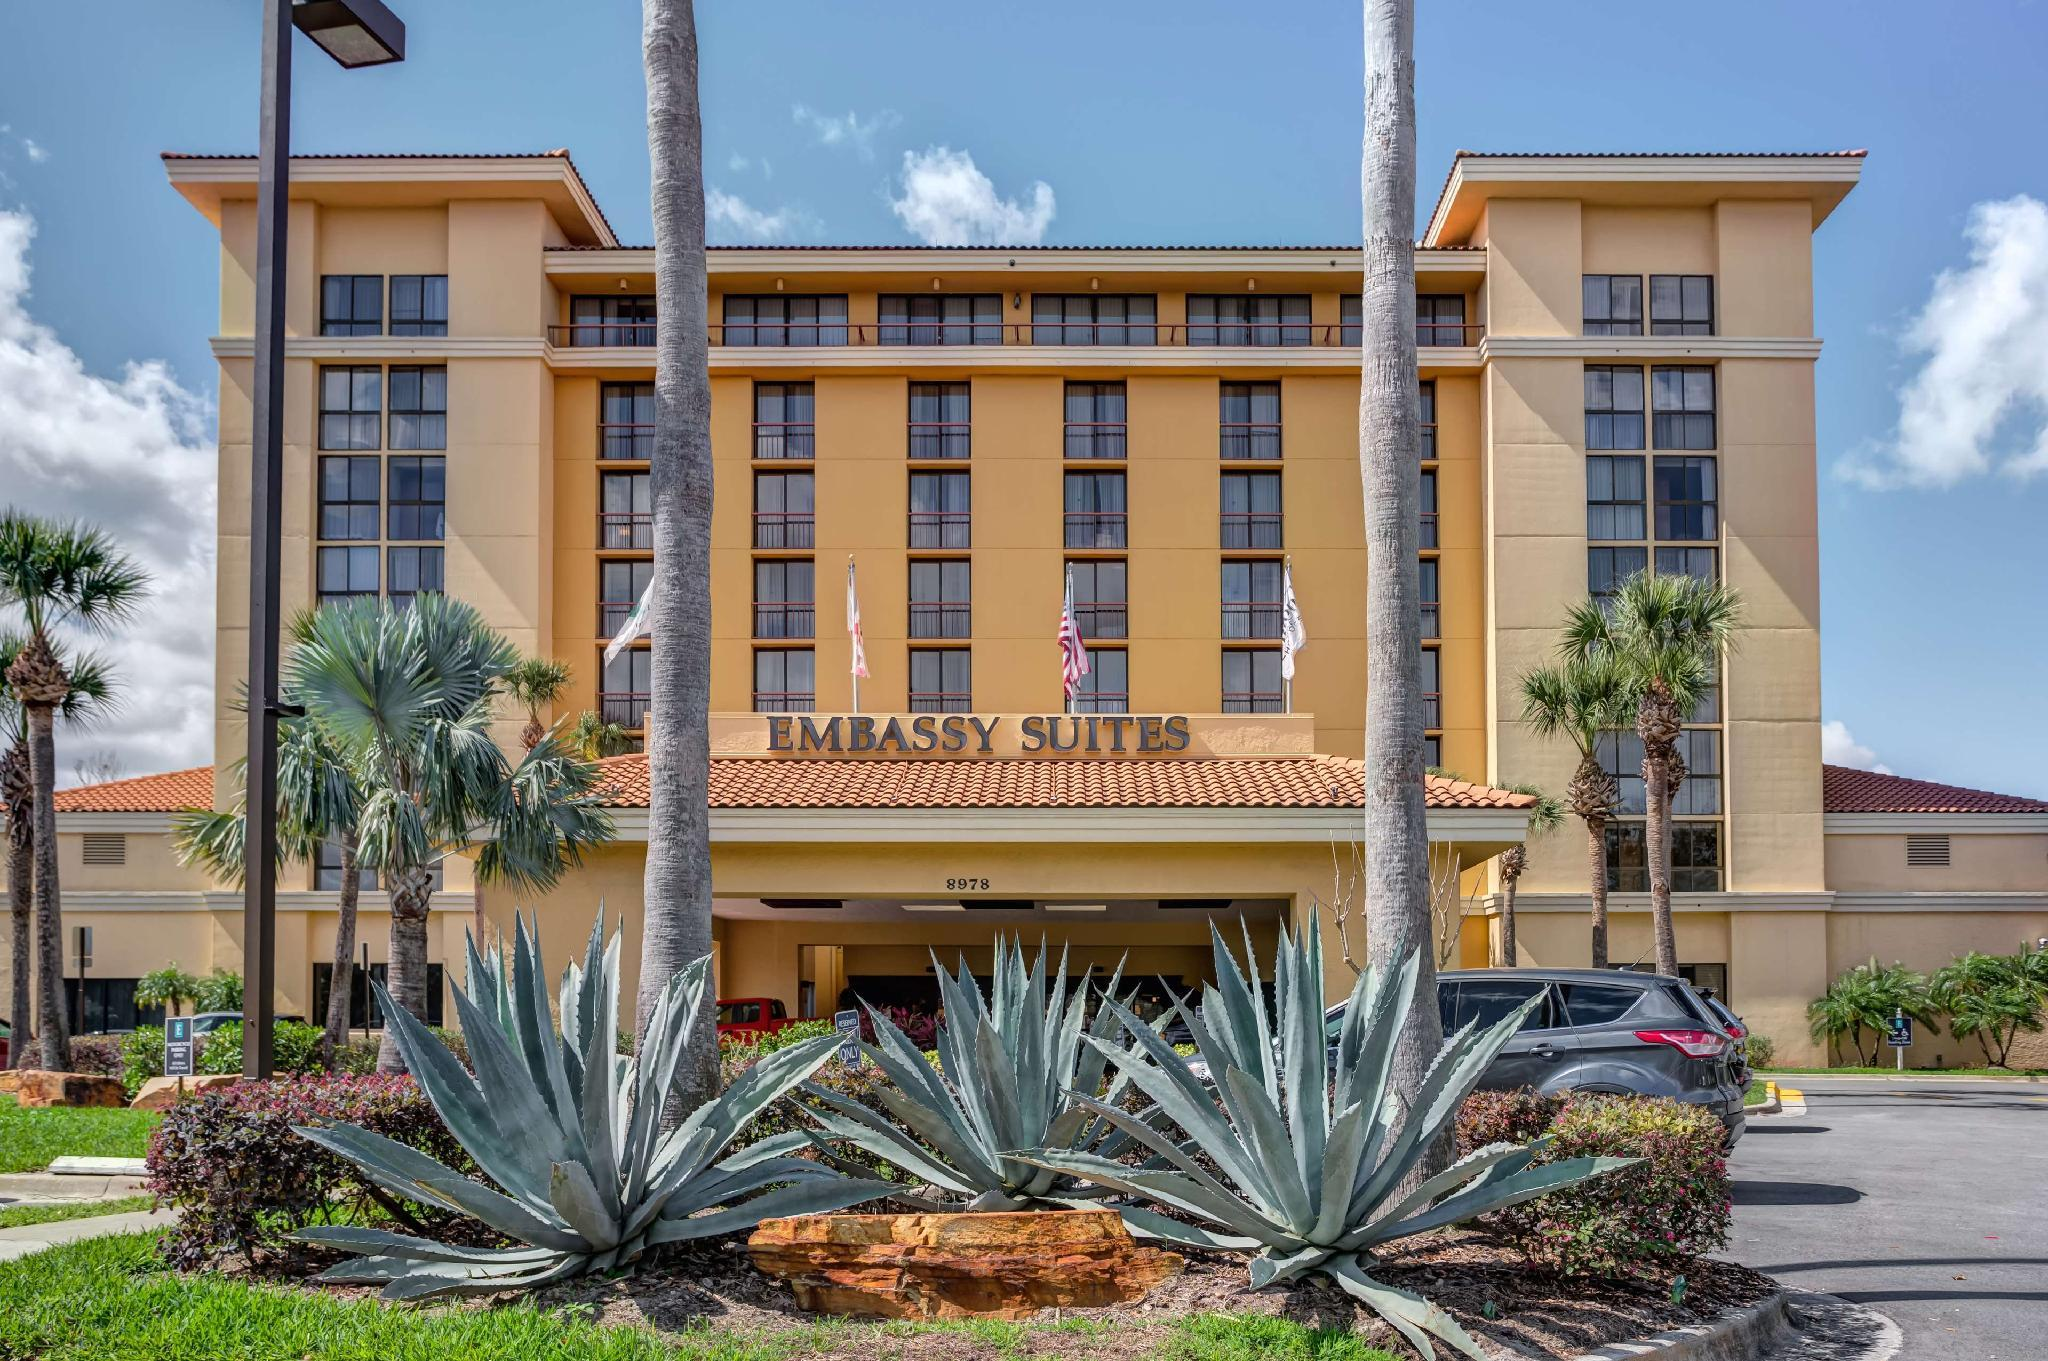 Embassy Suites Hotel Orlando International Drive South Convention Center